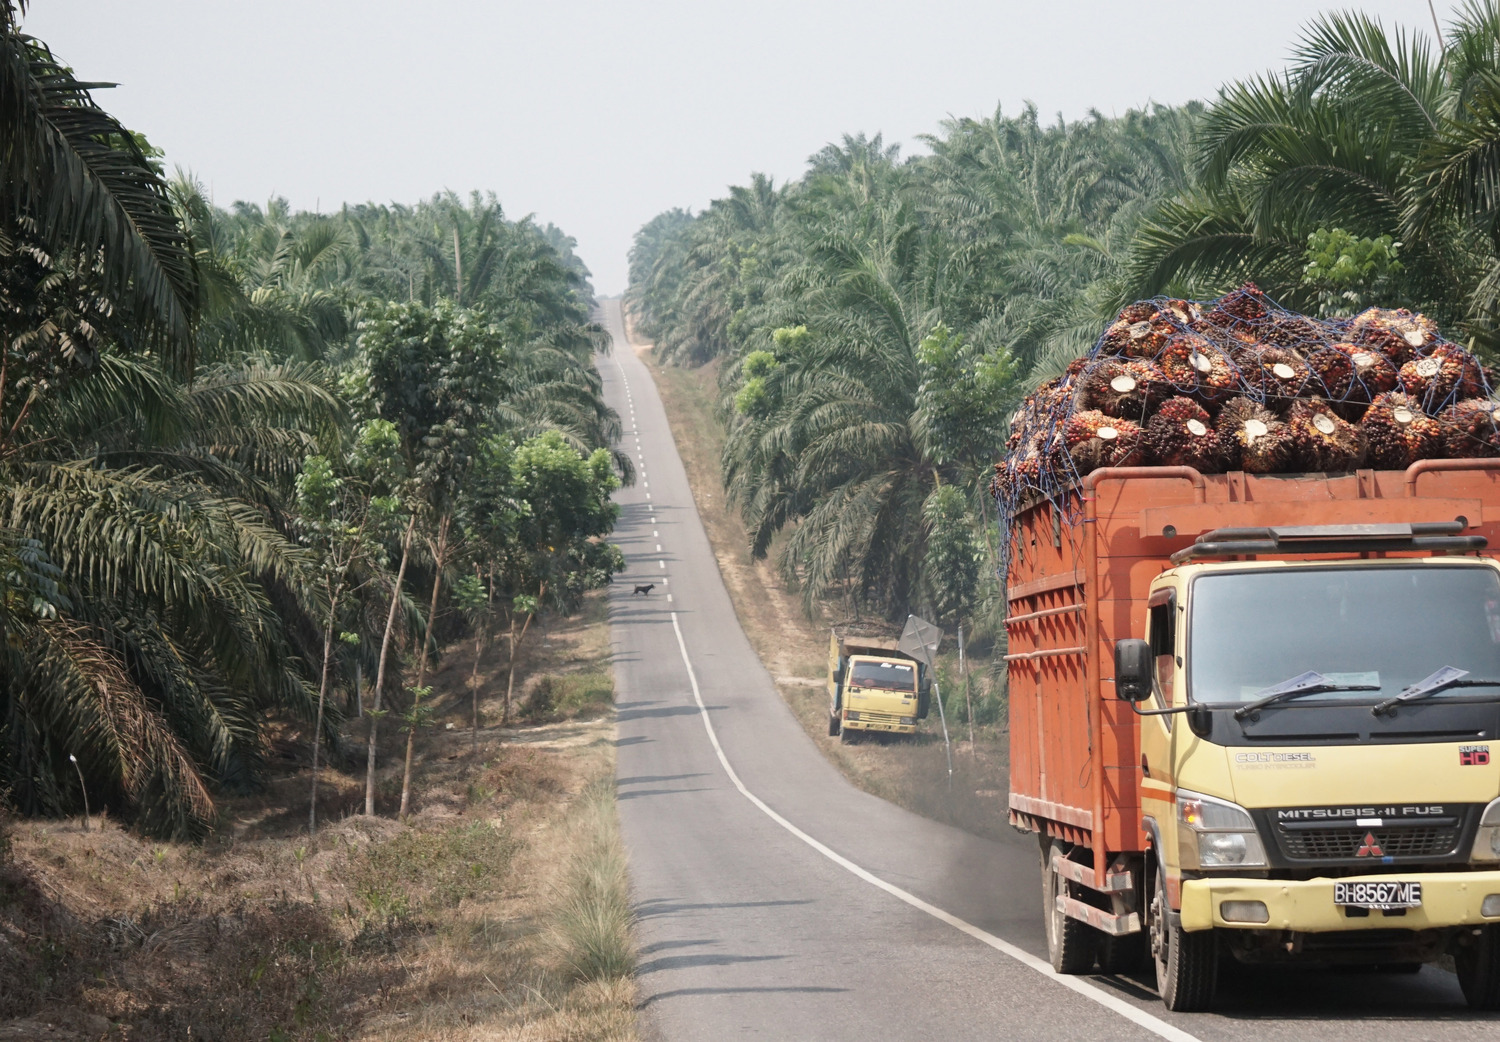 Truck loaded with oil palm fruit bunches, driving through oil palm tree plantation in Jambi province, Sumatra (Indonesia)